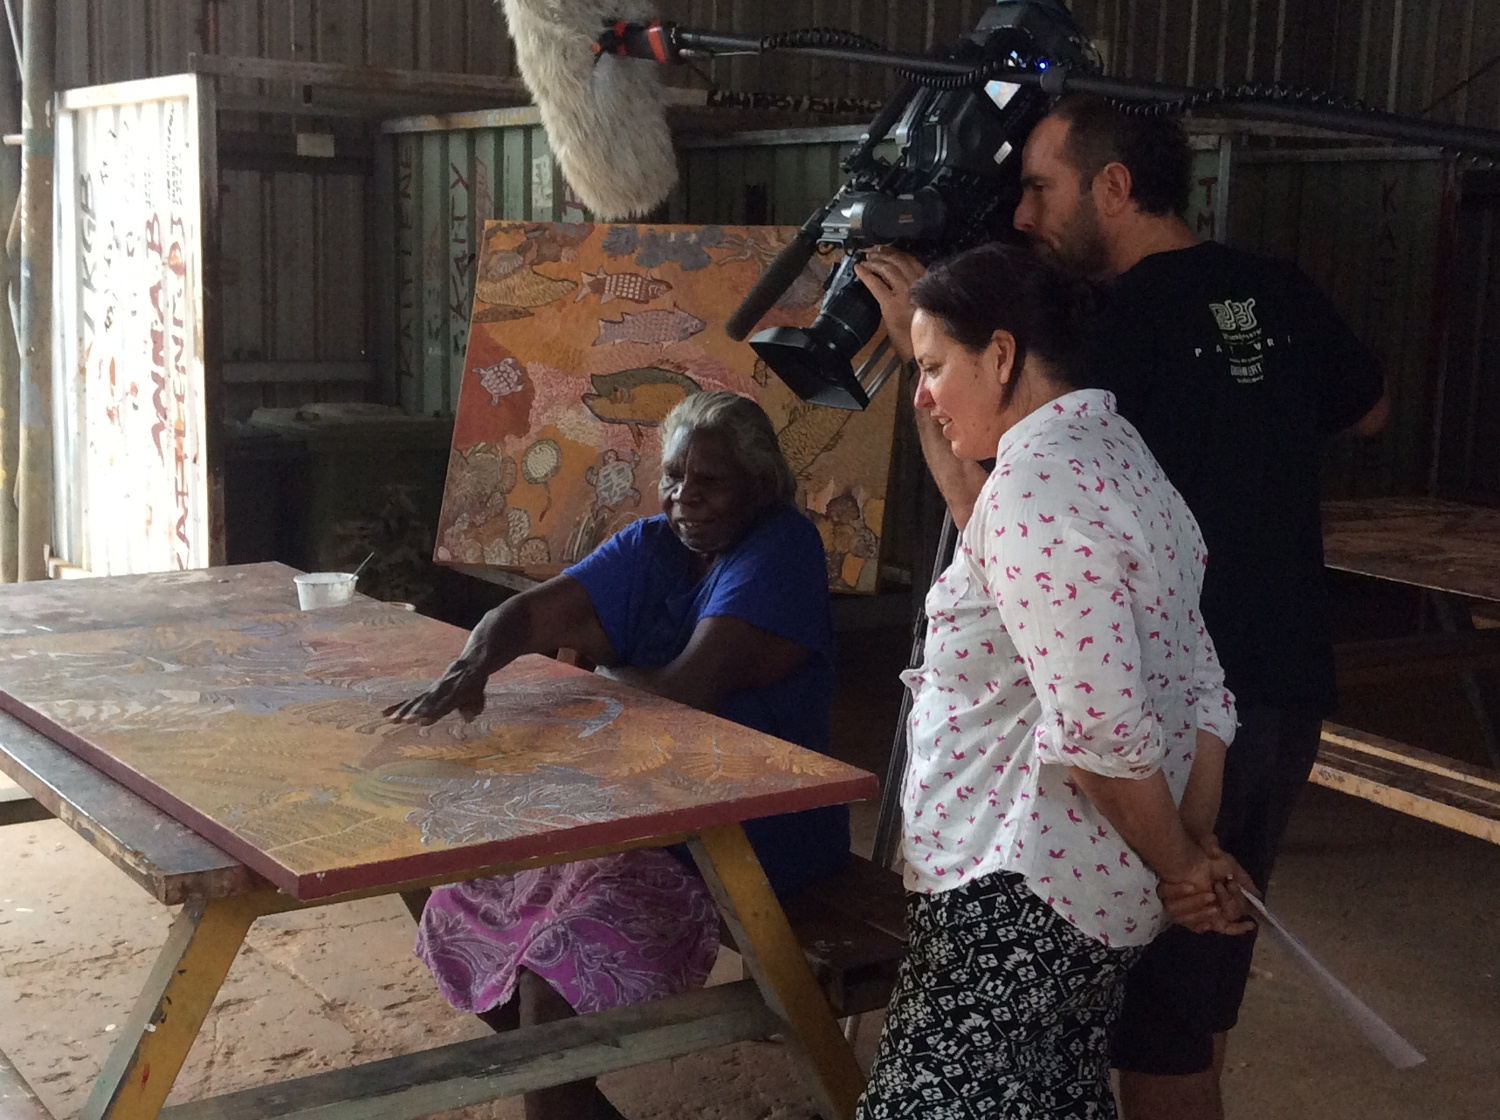 Artist Mary Puntji Clement explaining her artwork to the ICS crew (Camera: Jason Thomas & Director: Jub Clerc) at Kira Kiro Art Centre. © AGWA 2015